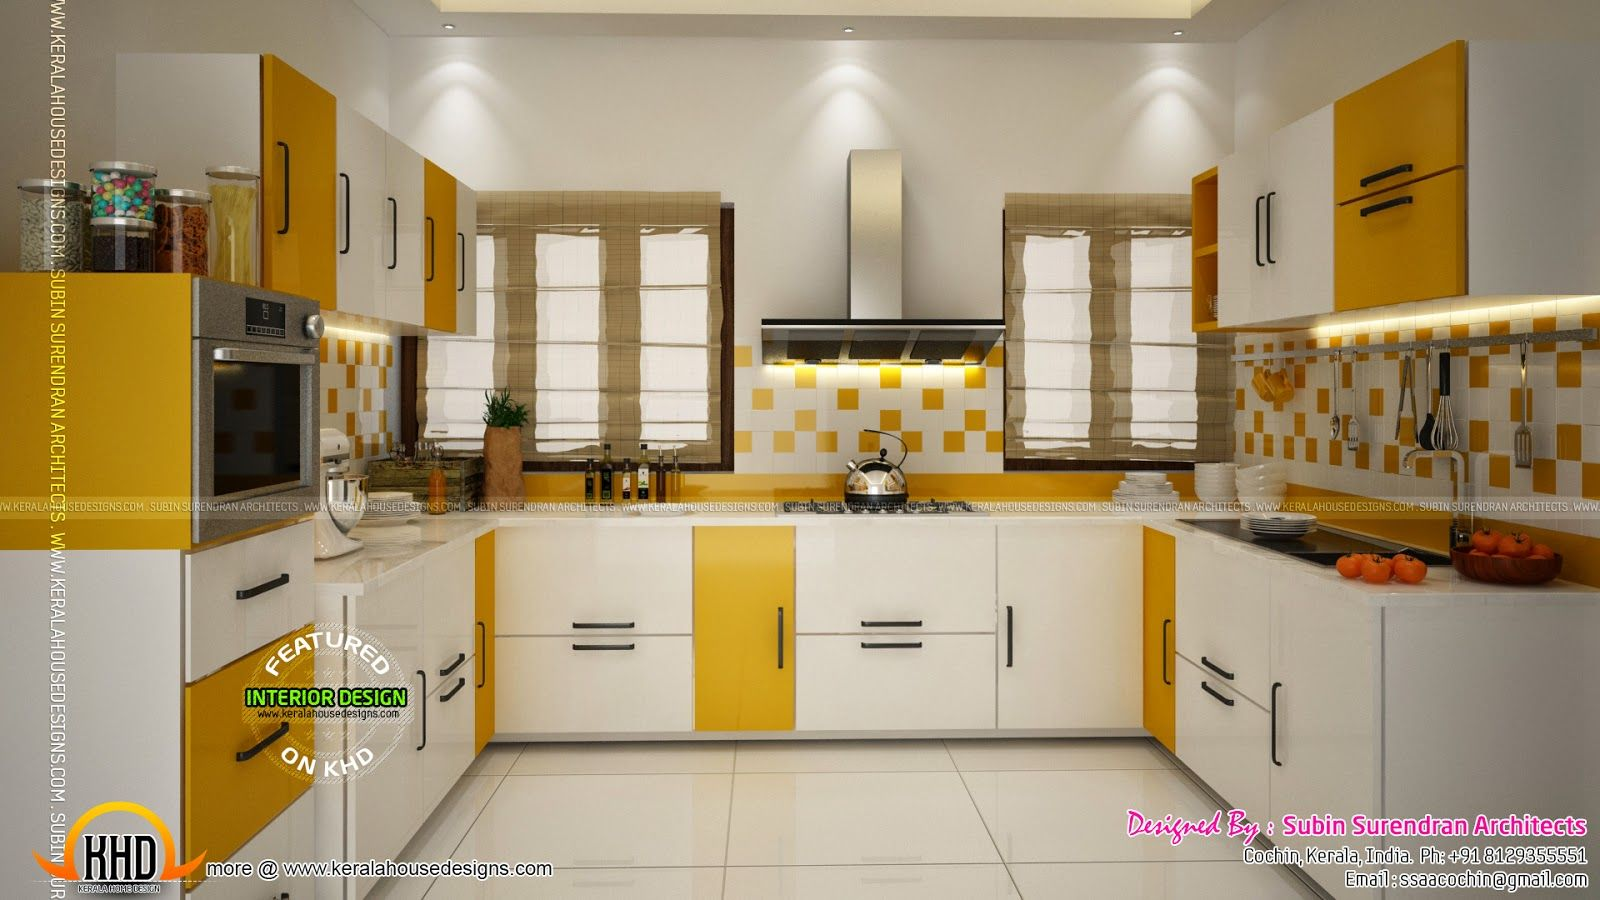 Kerala Home Design Floor Plans Interior Design Cochin Kitchen